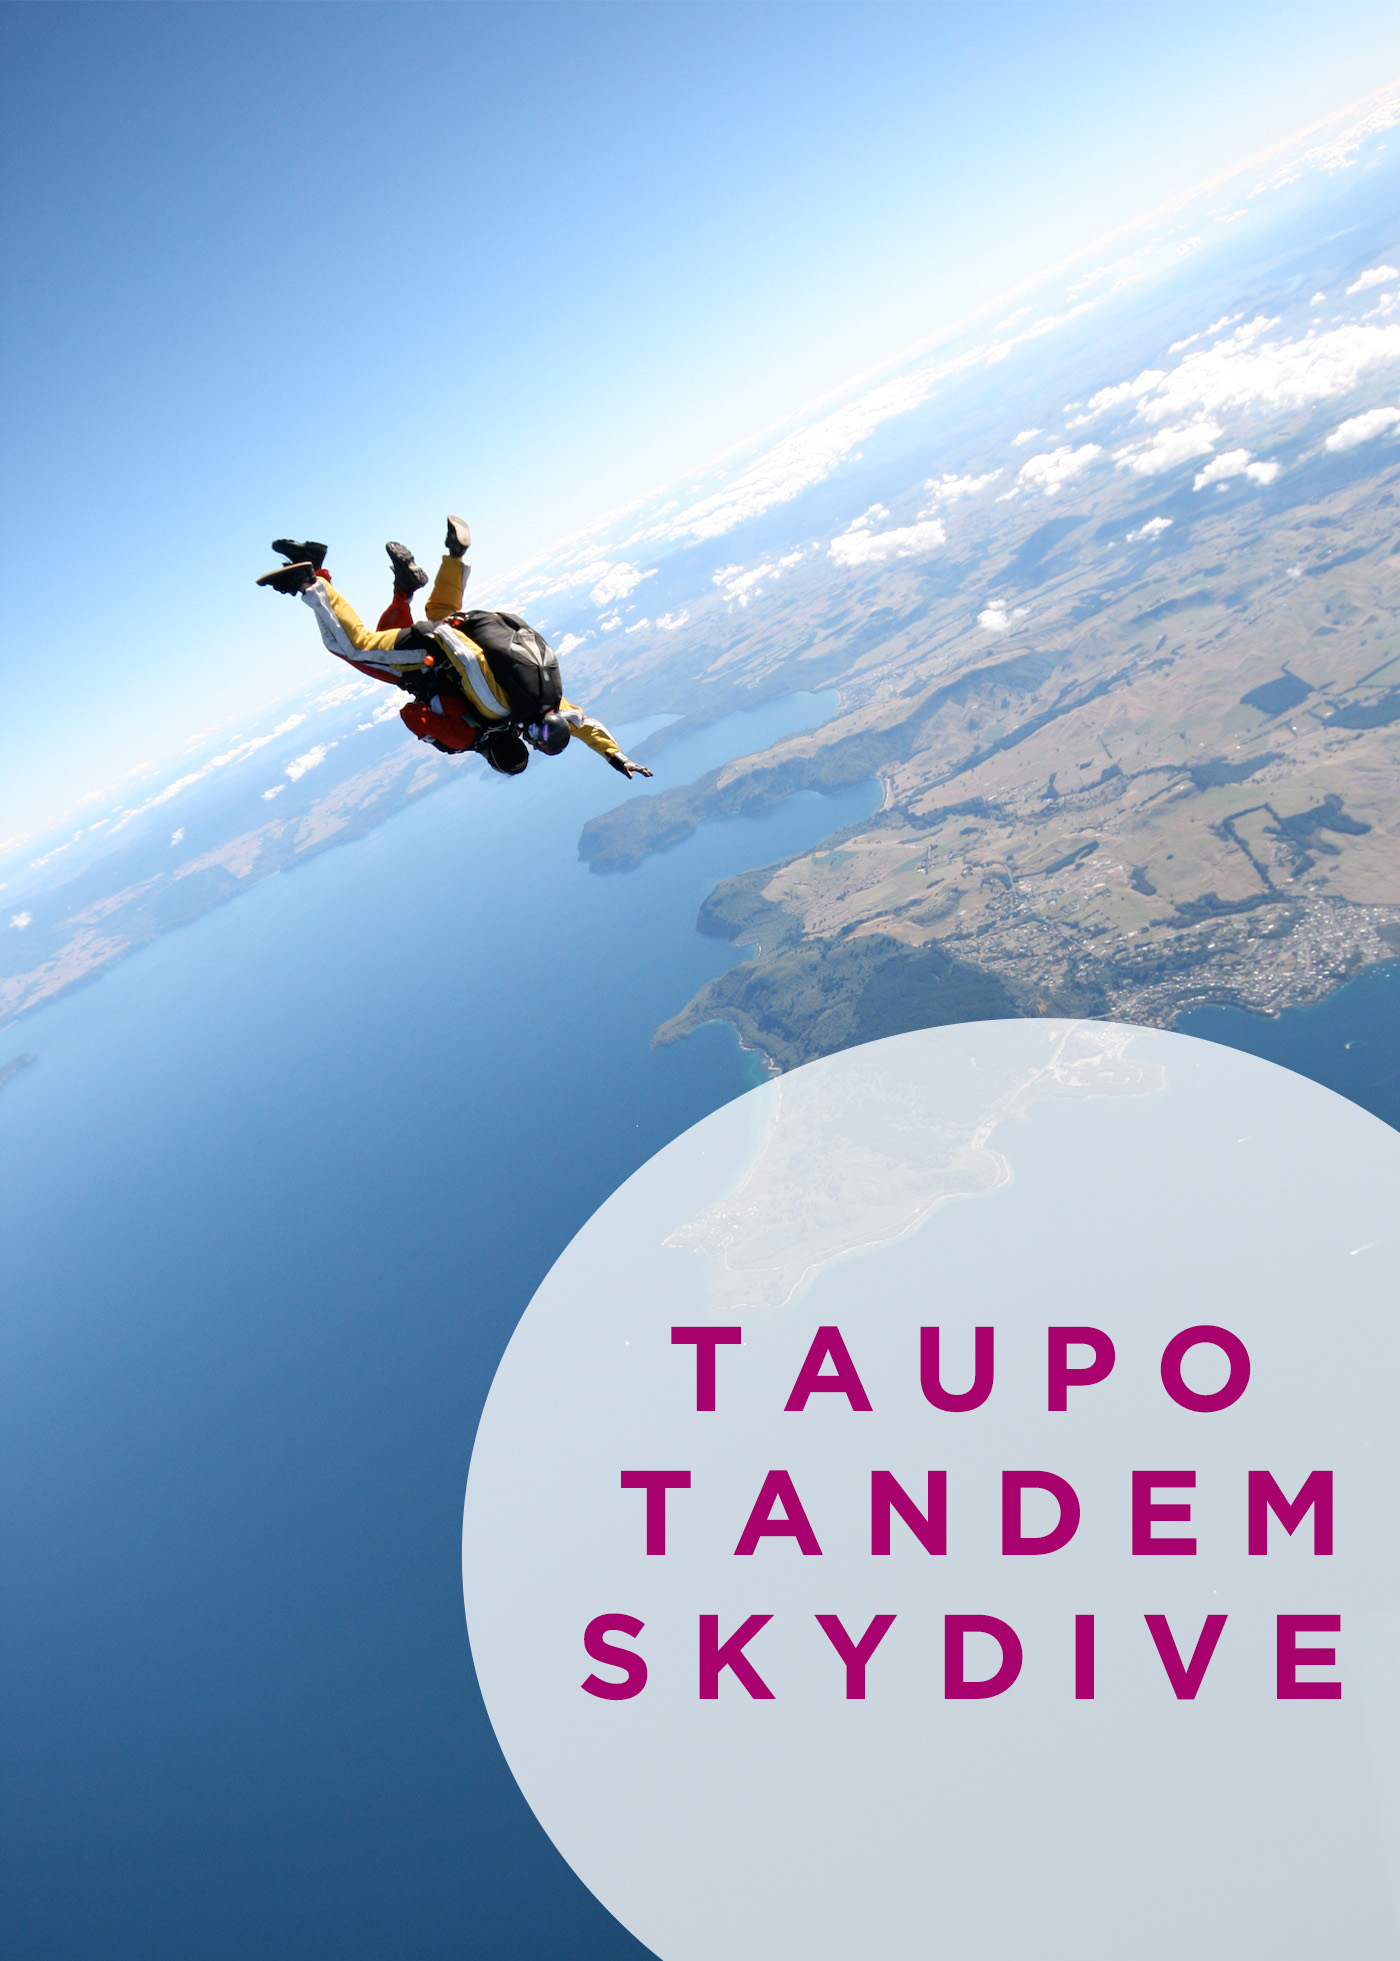 Taupo Tandem Skydive x Awesomewave.net